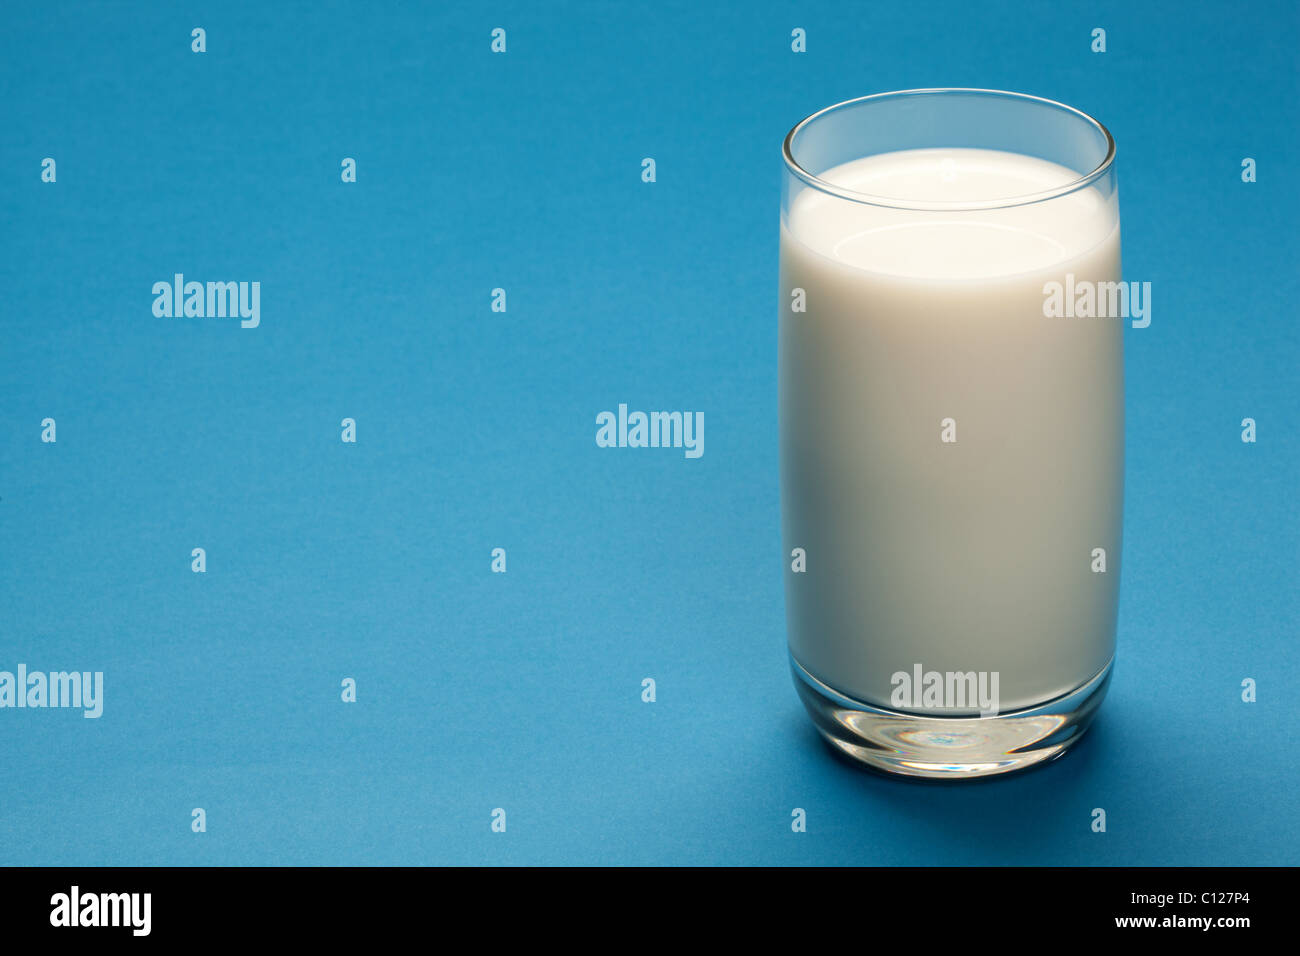 Glass of milk on a blue background. - Stock Image